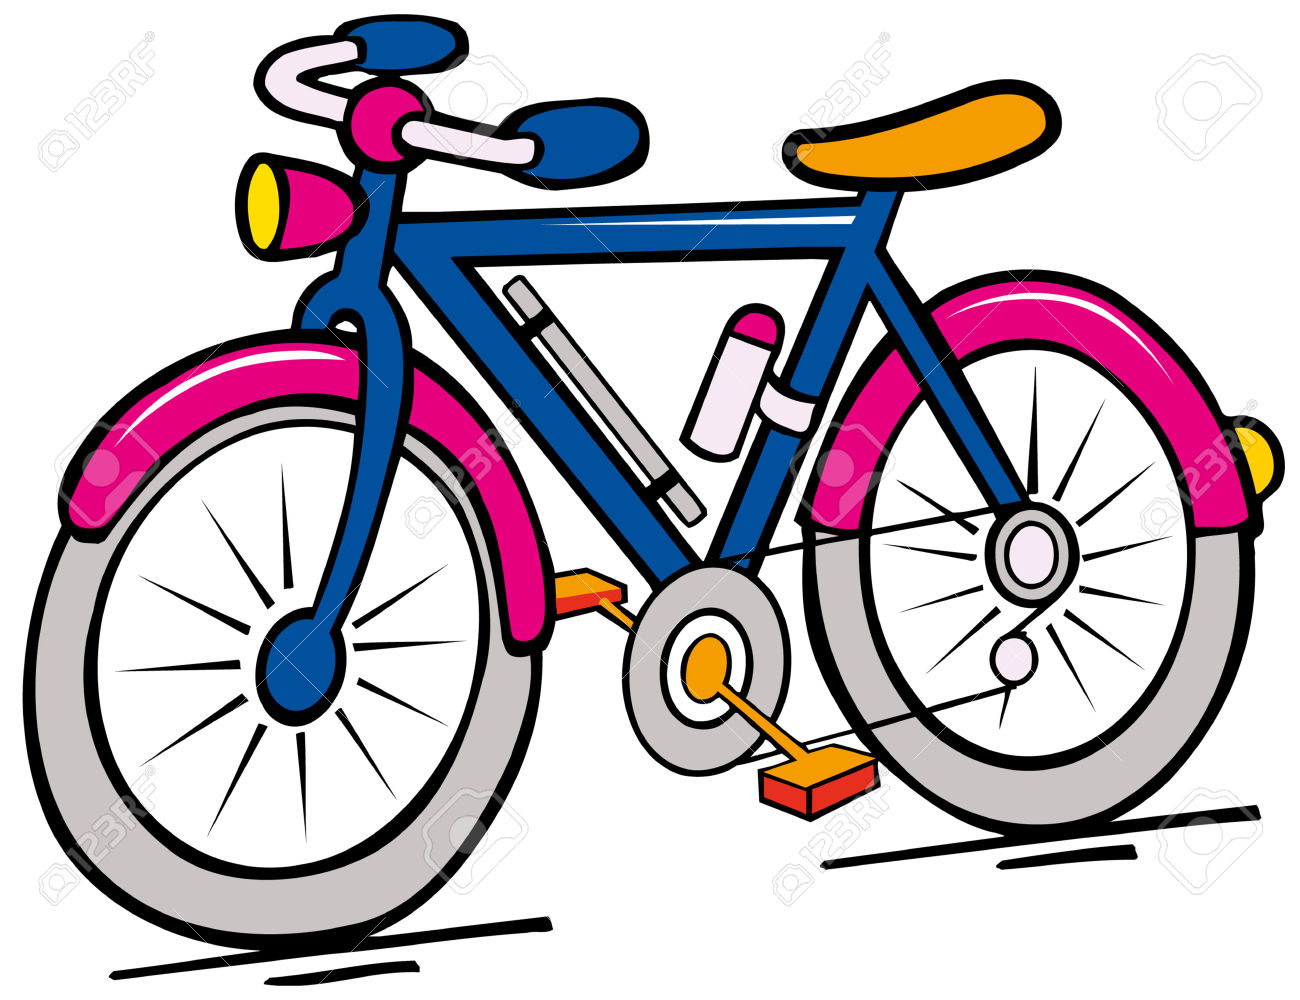 Bike clipart cartoon. Pictures of bicycle free